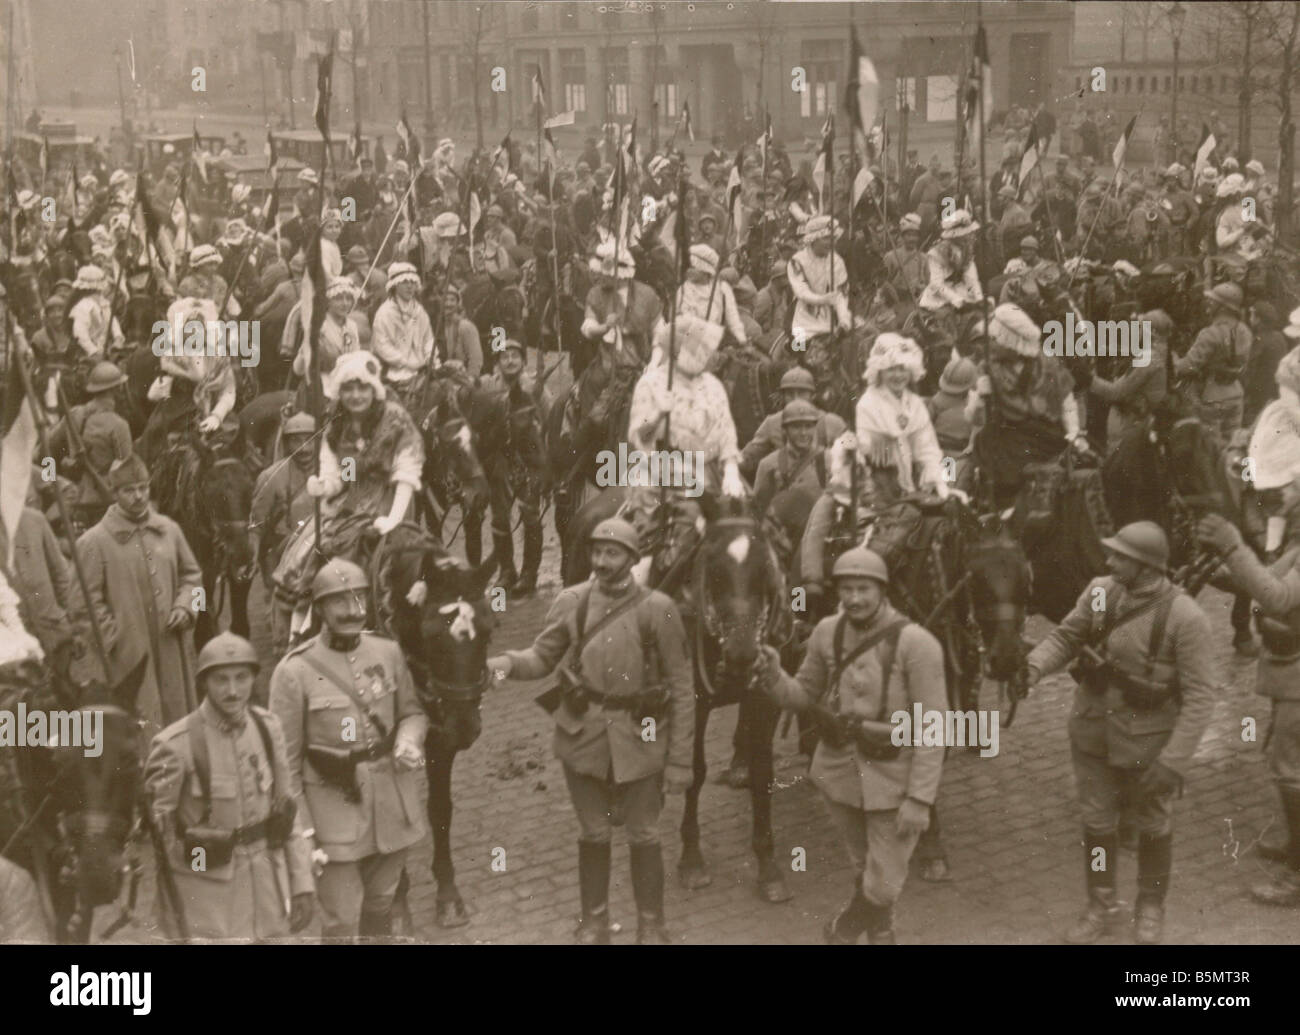 9FK 1918 12 0 A1 E Metz 1918 Parade of liberation World War 1 1914 18 End of War Metz December 1918 After the amisti - Stock Image